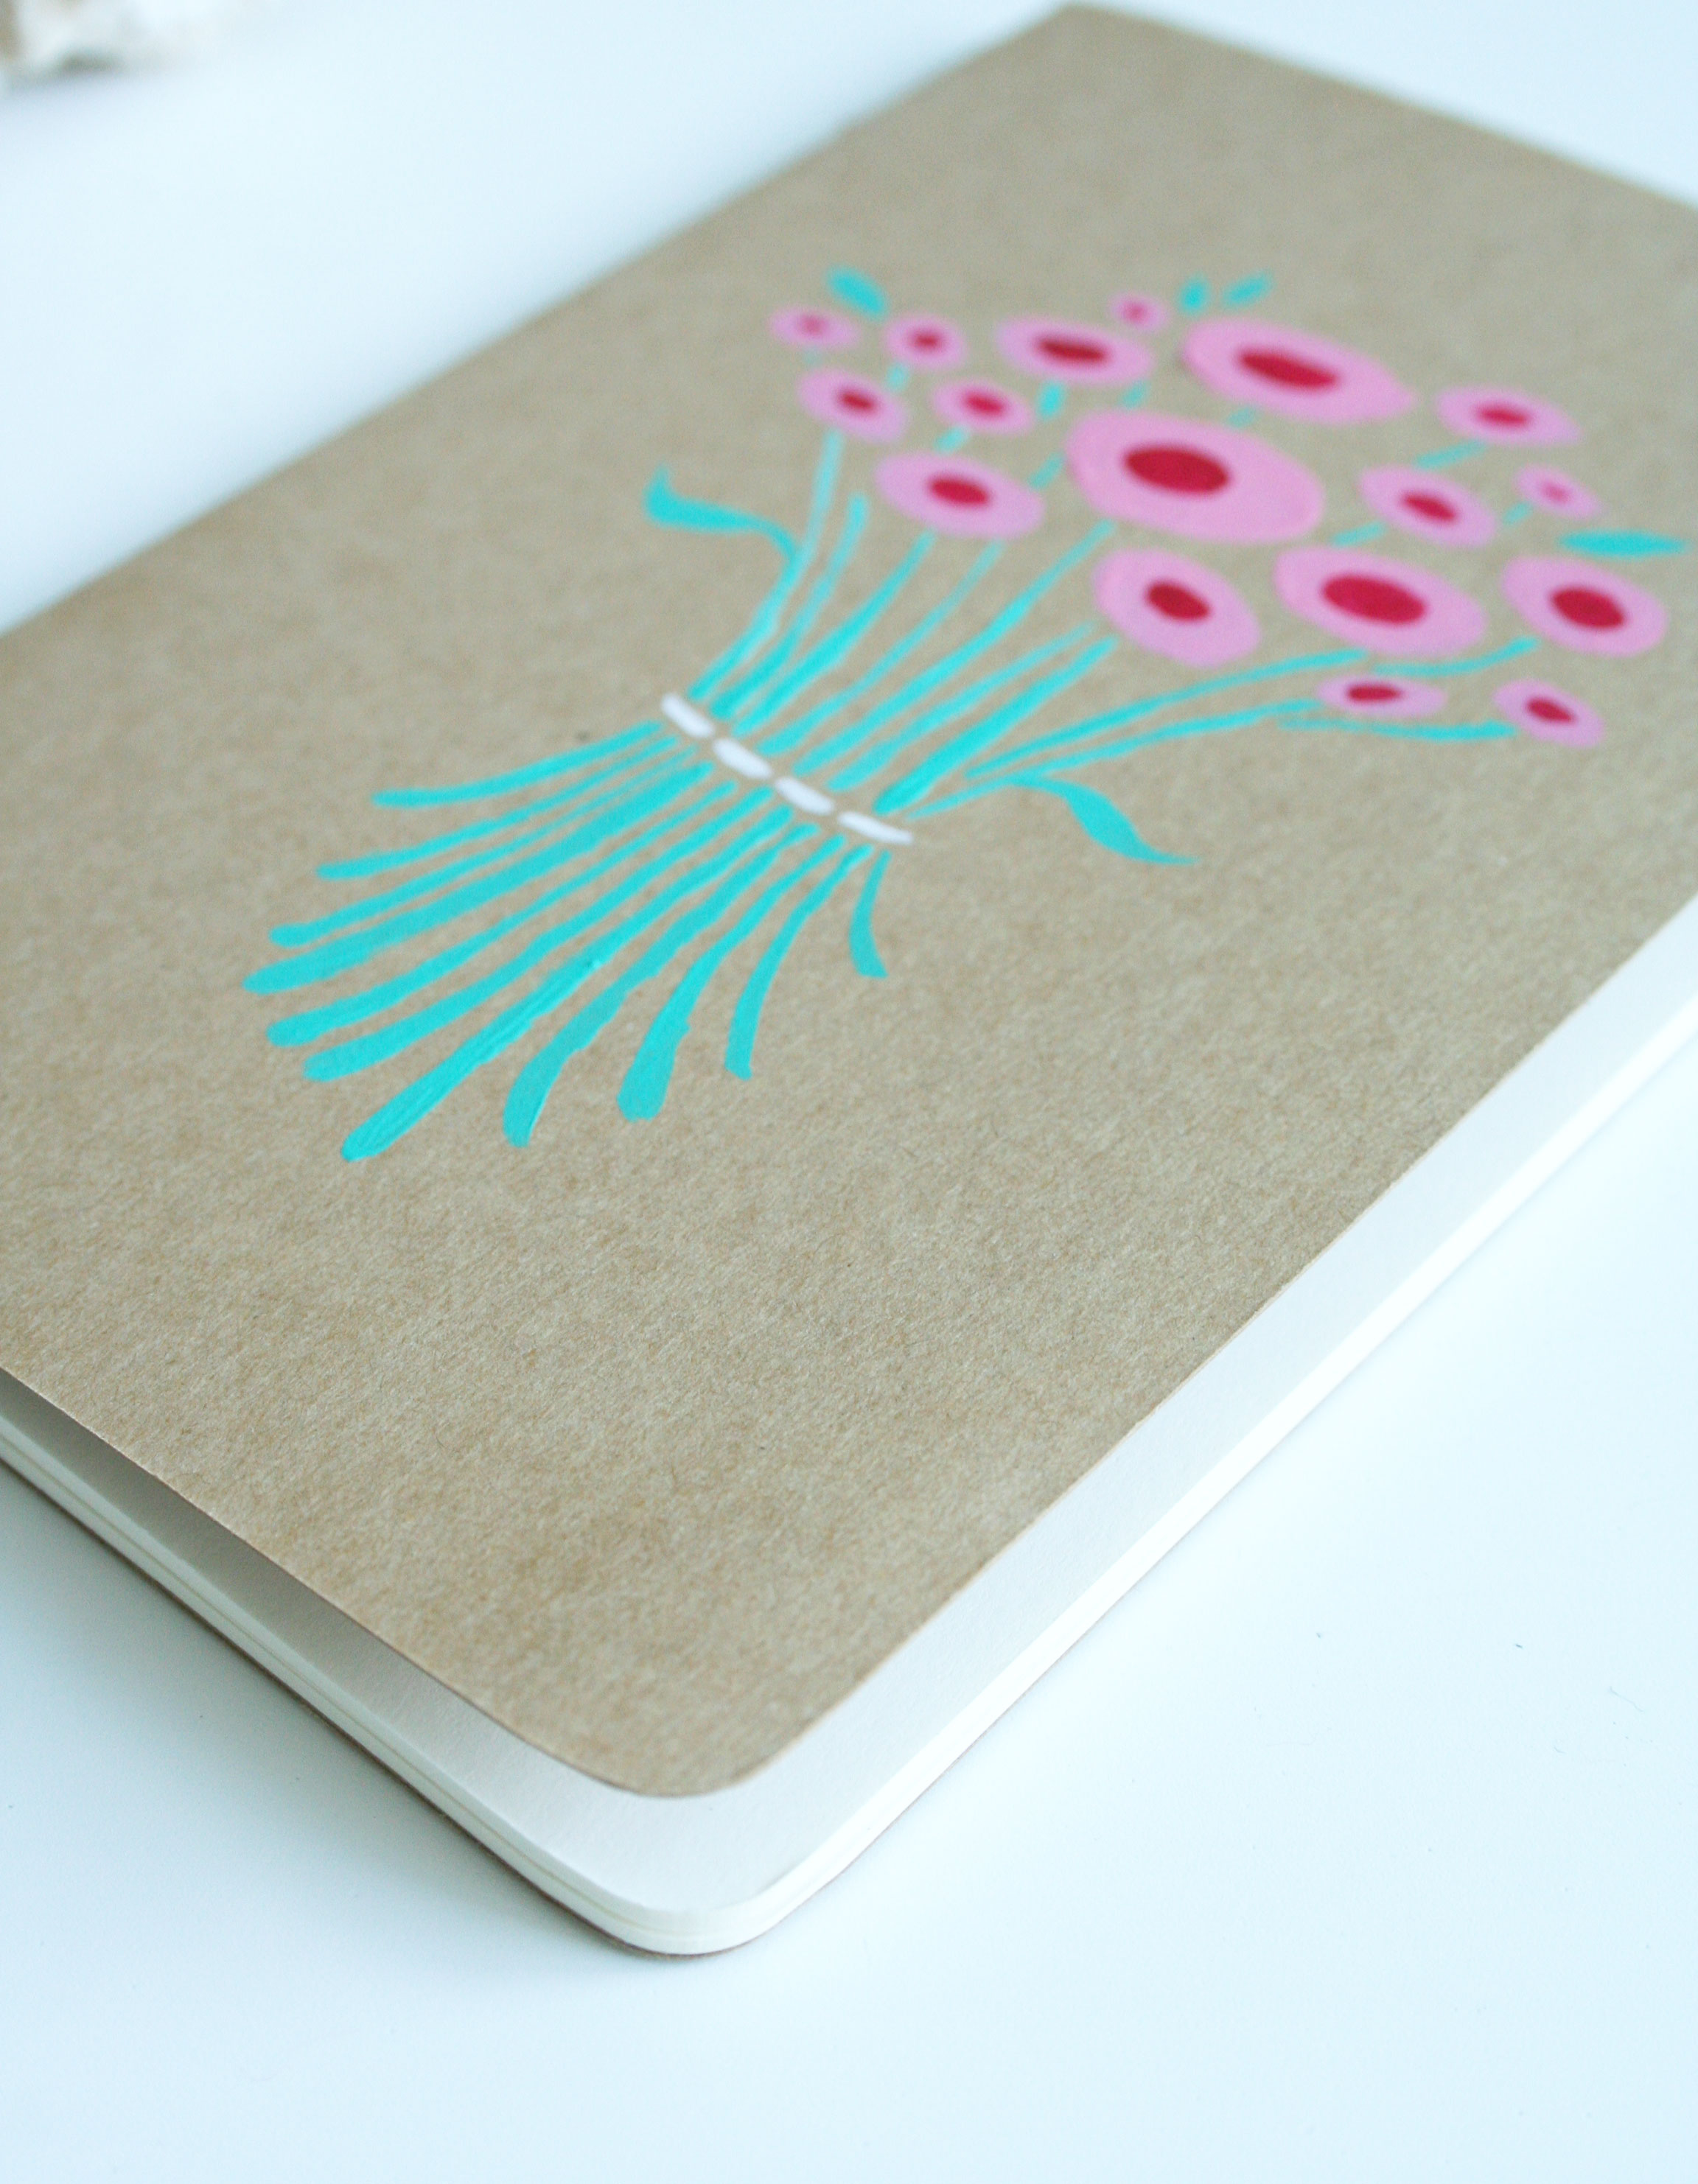 Pages - Blank flower journal by Fin and feather art